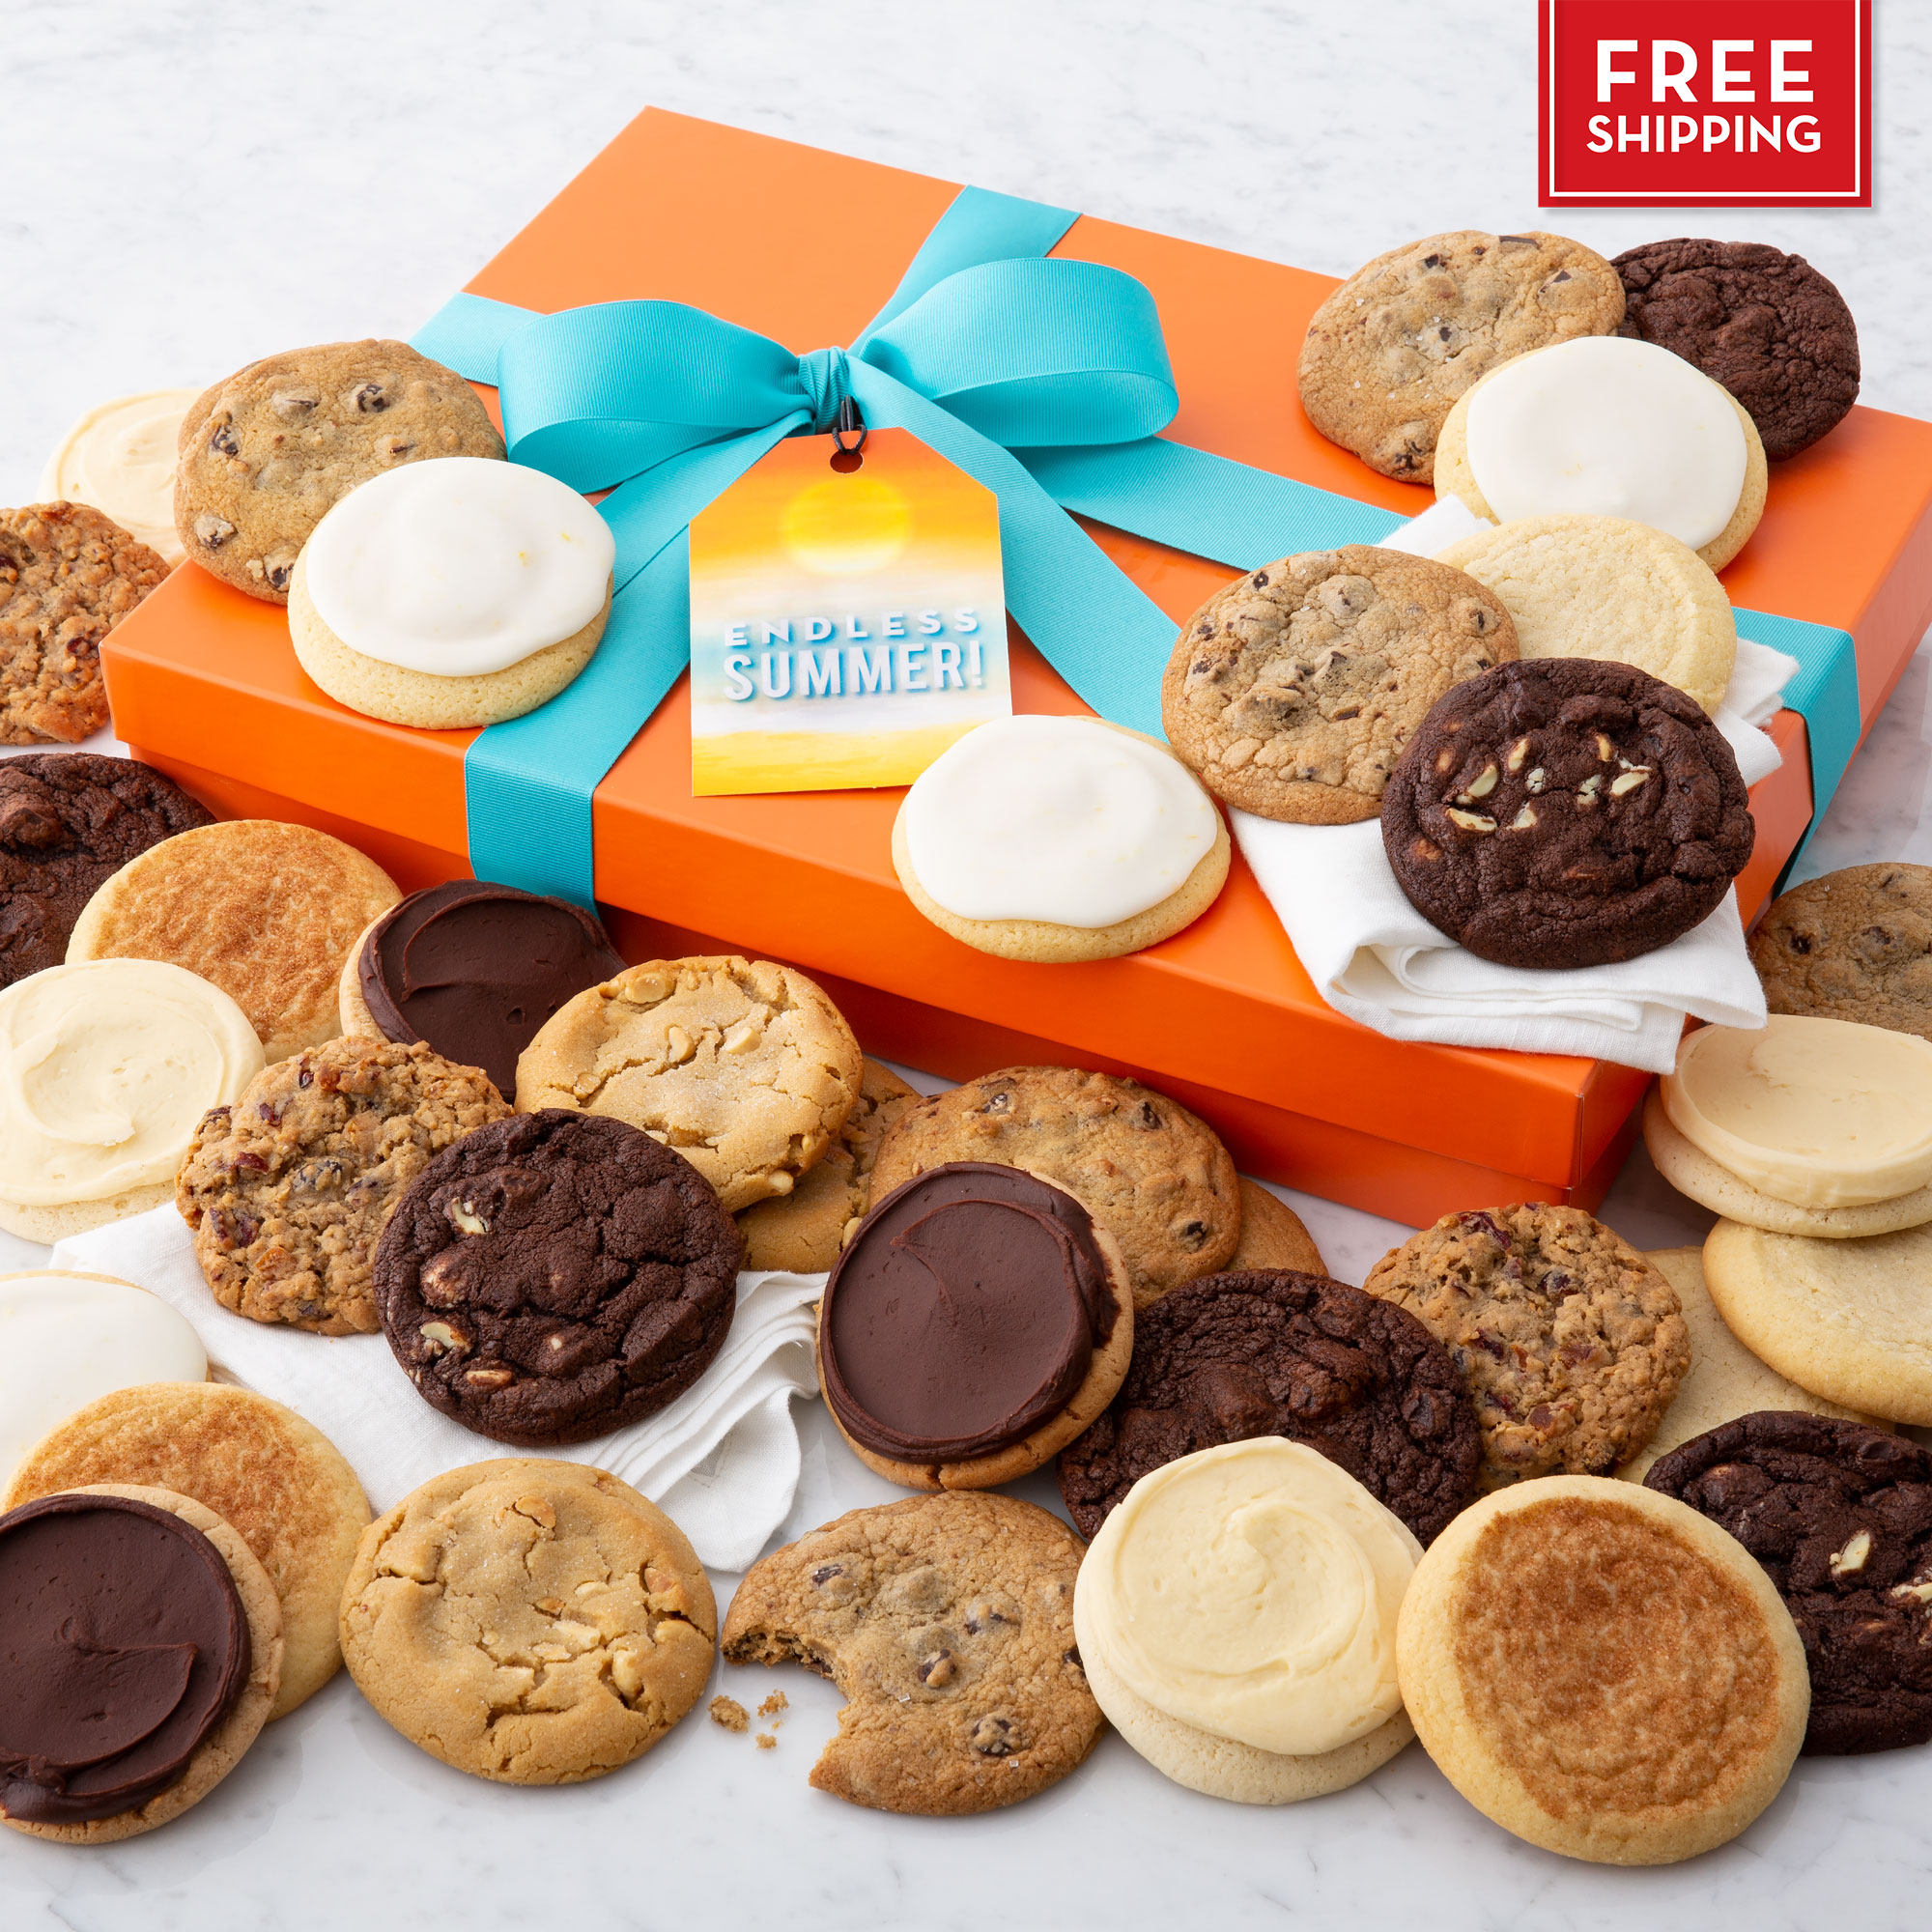 Endless Summer Luxe Cookie Gift Box - Each & Every Flavor